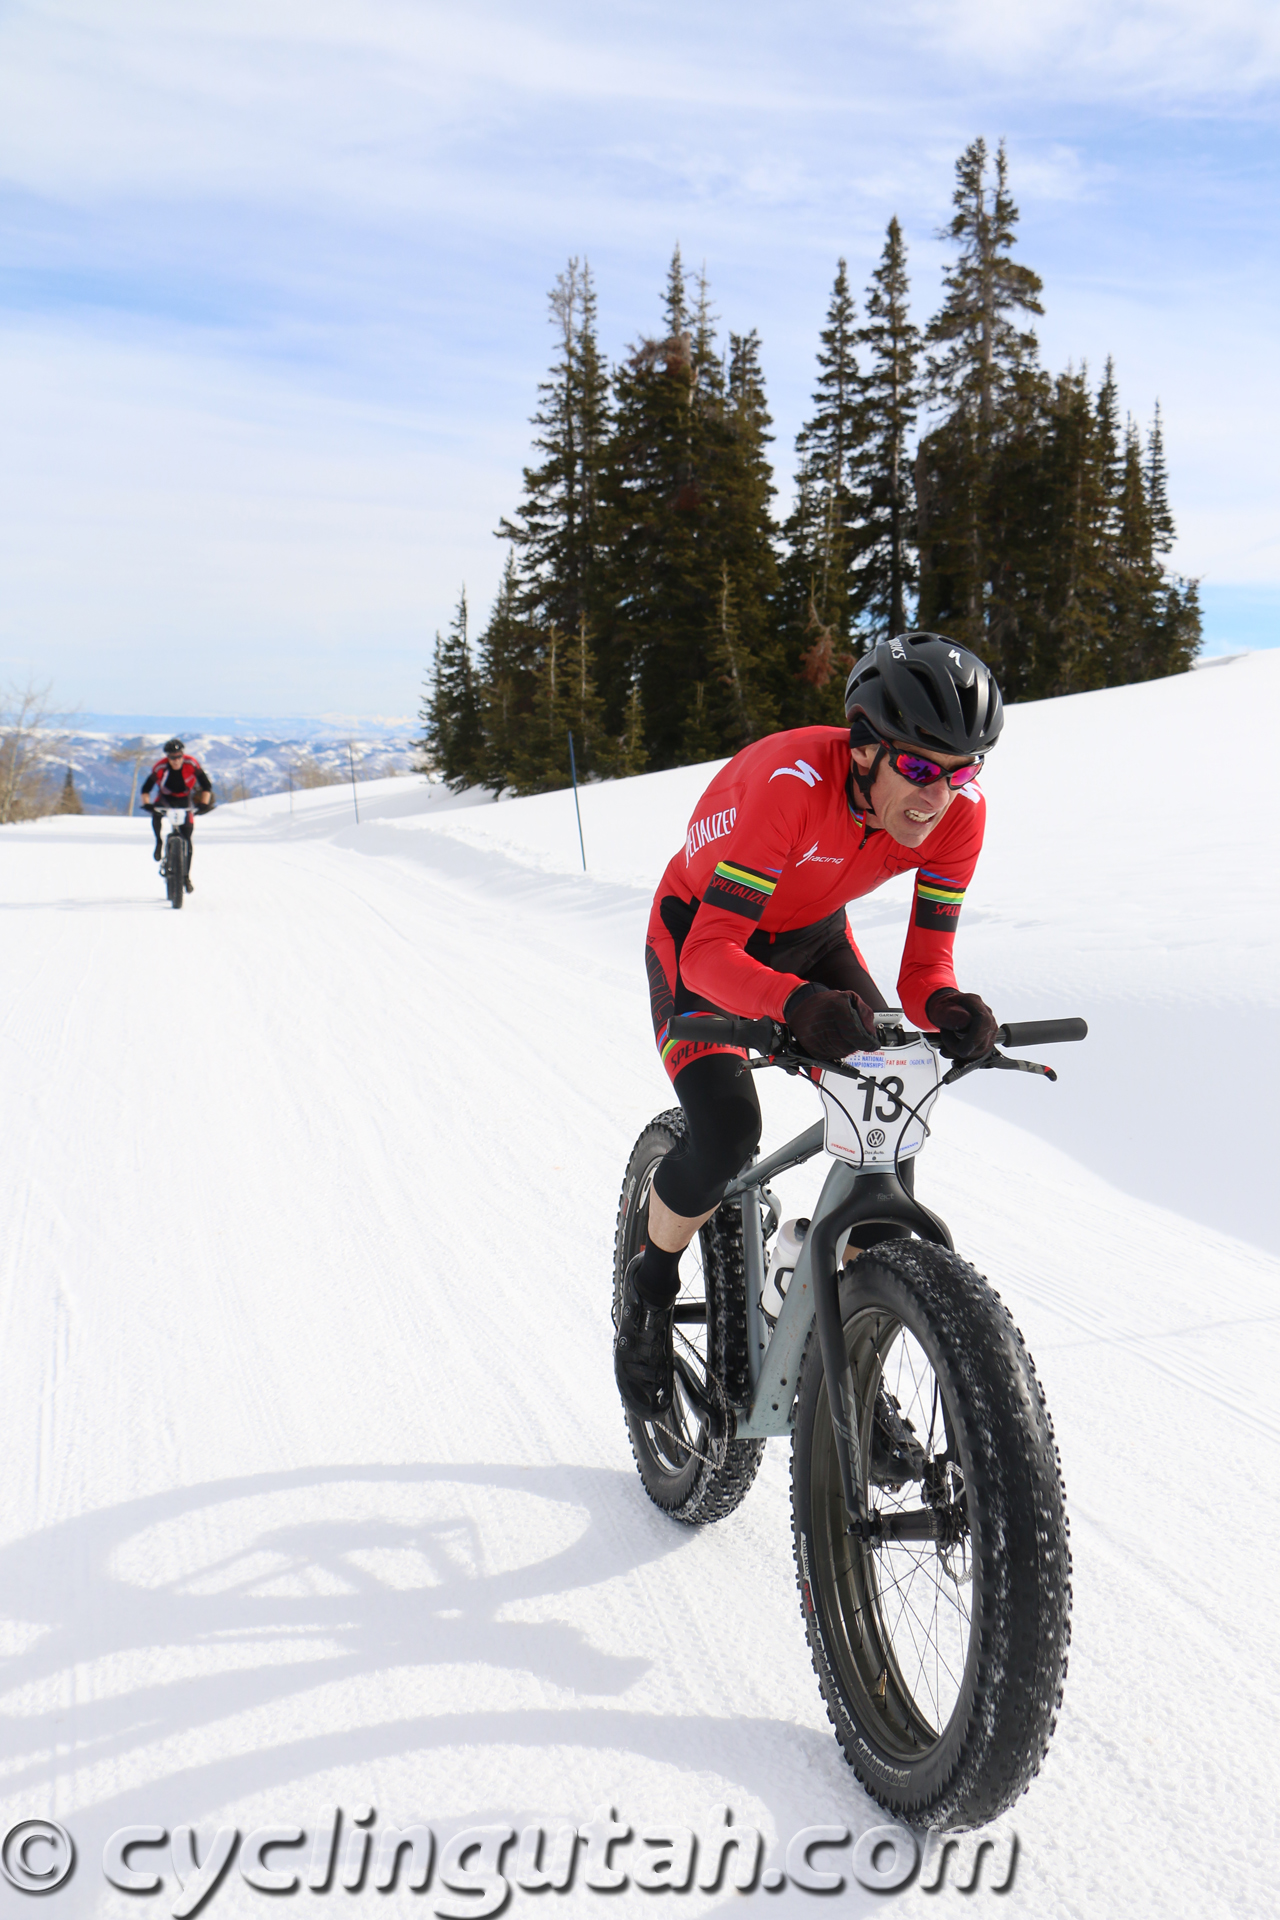 Ned Overend in the midst of a devastating last lap attack on his way to winning the pro Fat Bike National Championship at Powder Mountain on February 14, 2015. Photo by Dave Iltis